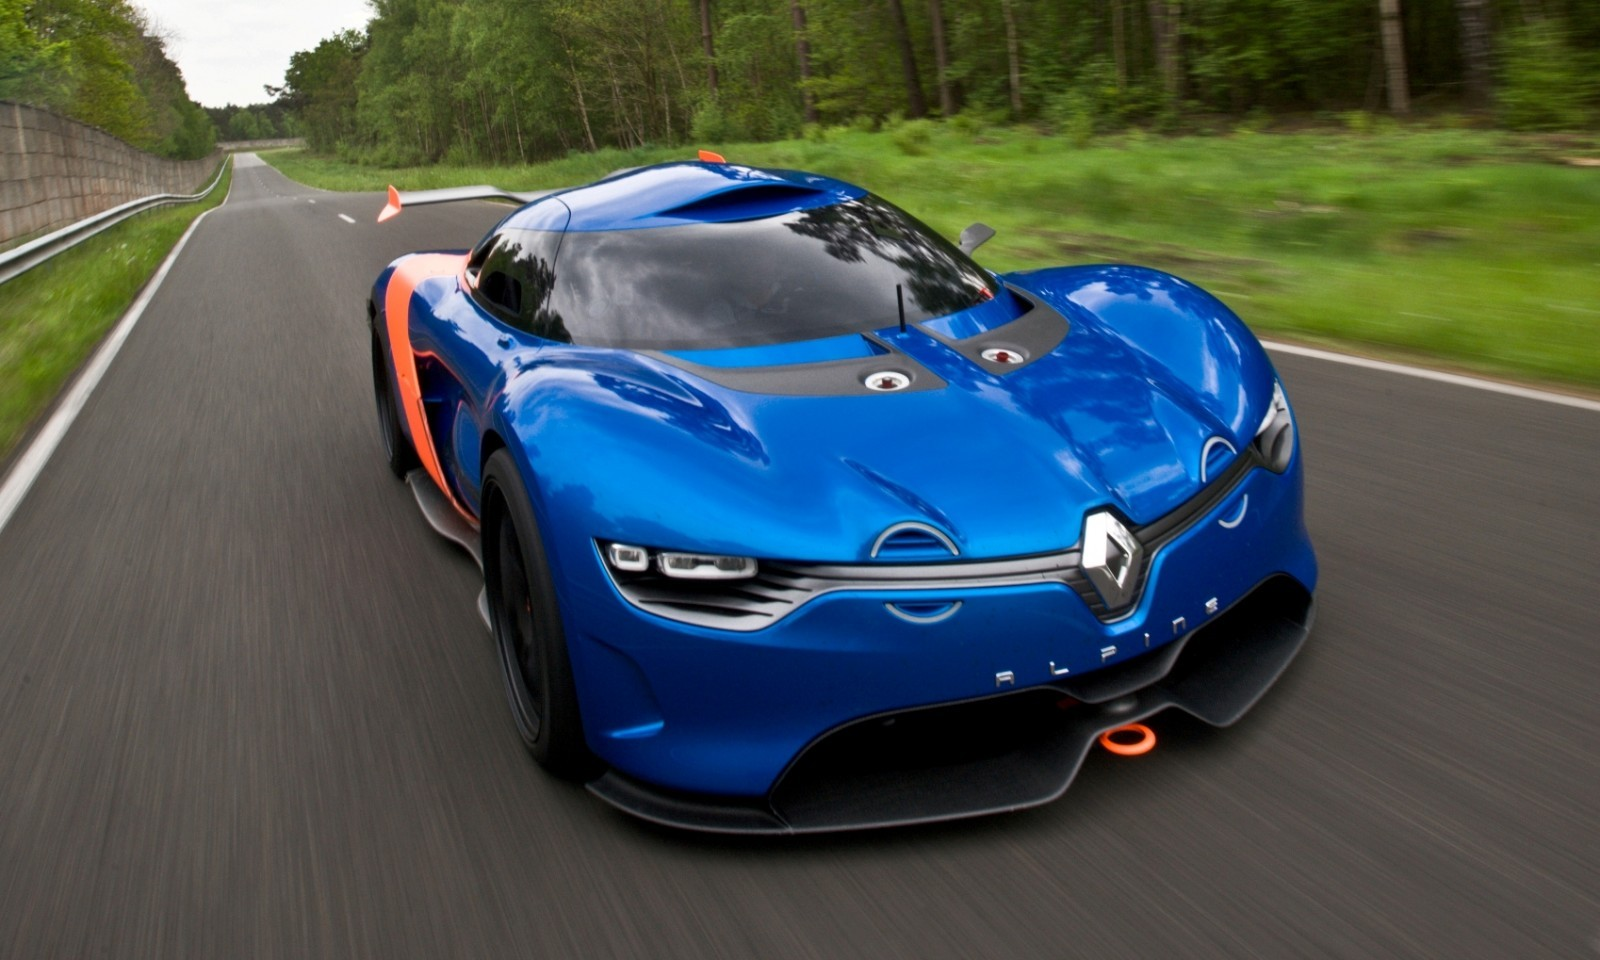 Concept Flashback - 2012 Renault Alpine A110-50 A Blend of M64 and A110 Berlinette 54